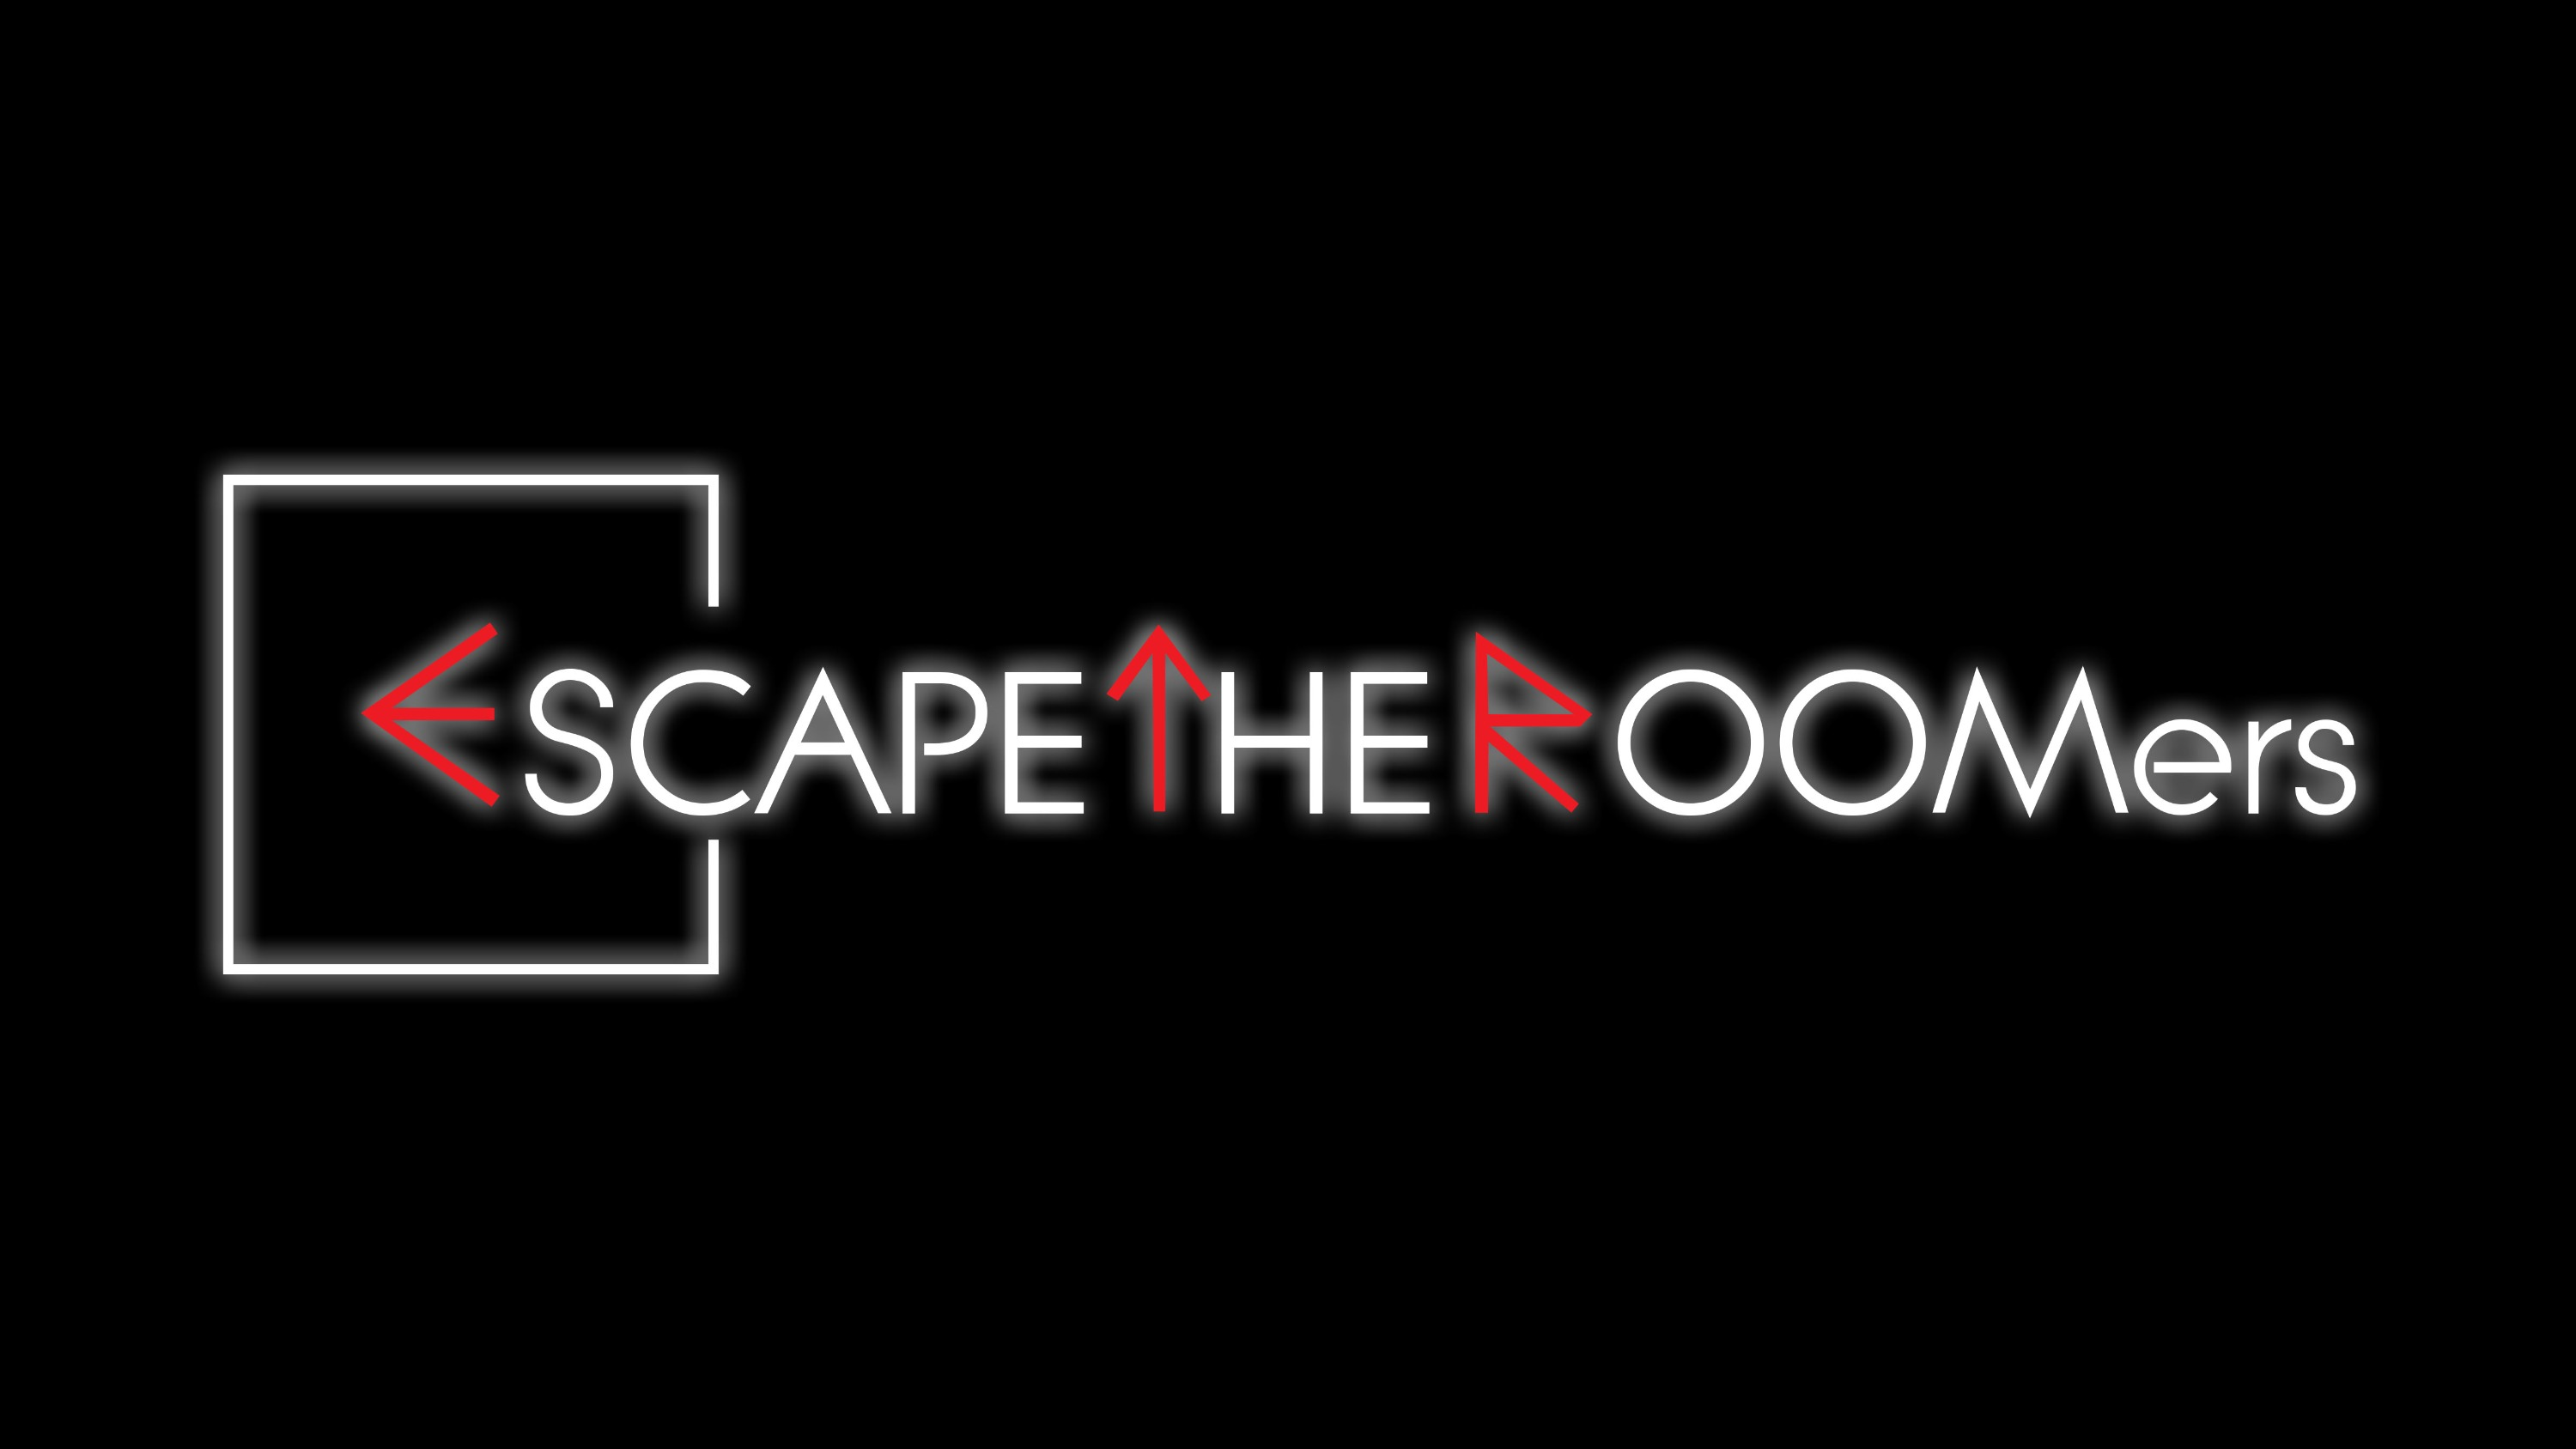 ESCAPETHEROOMers